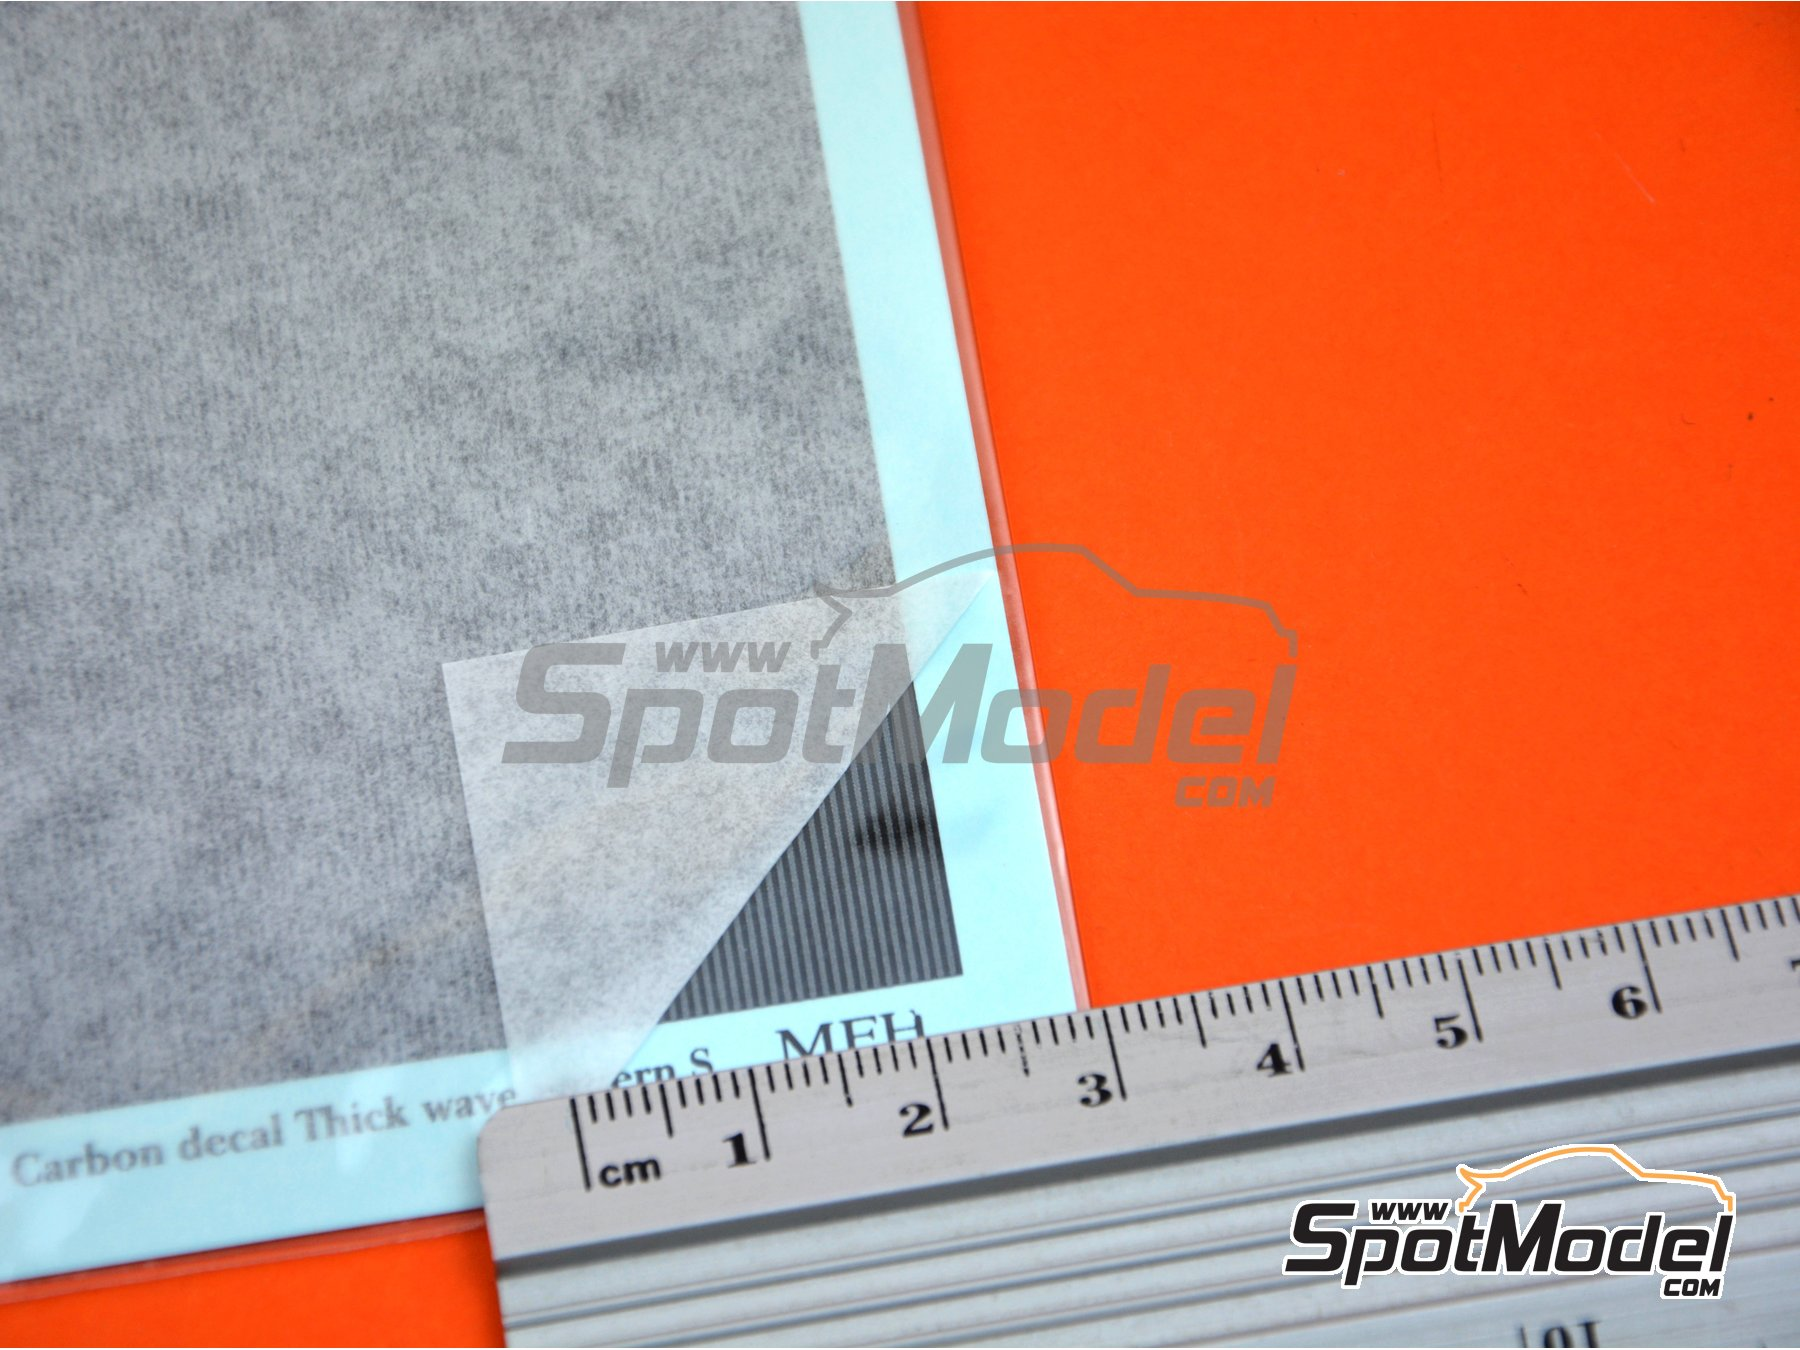 Image 4: Carbon Decal Thick Wave Pattern Type 1 Small | Decals manufactured by Model Factory Hiro (ref.MFH-P1138)